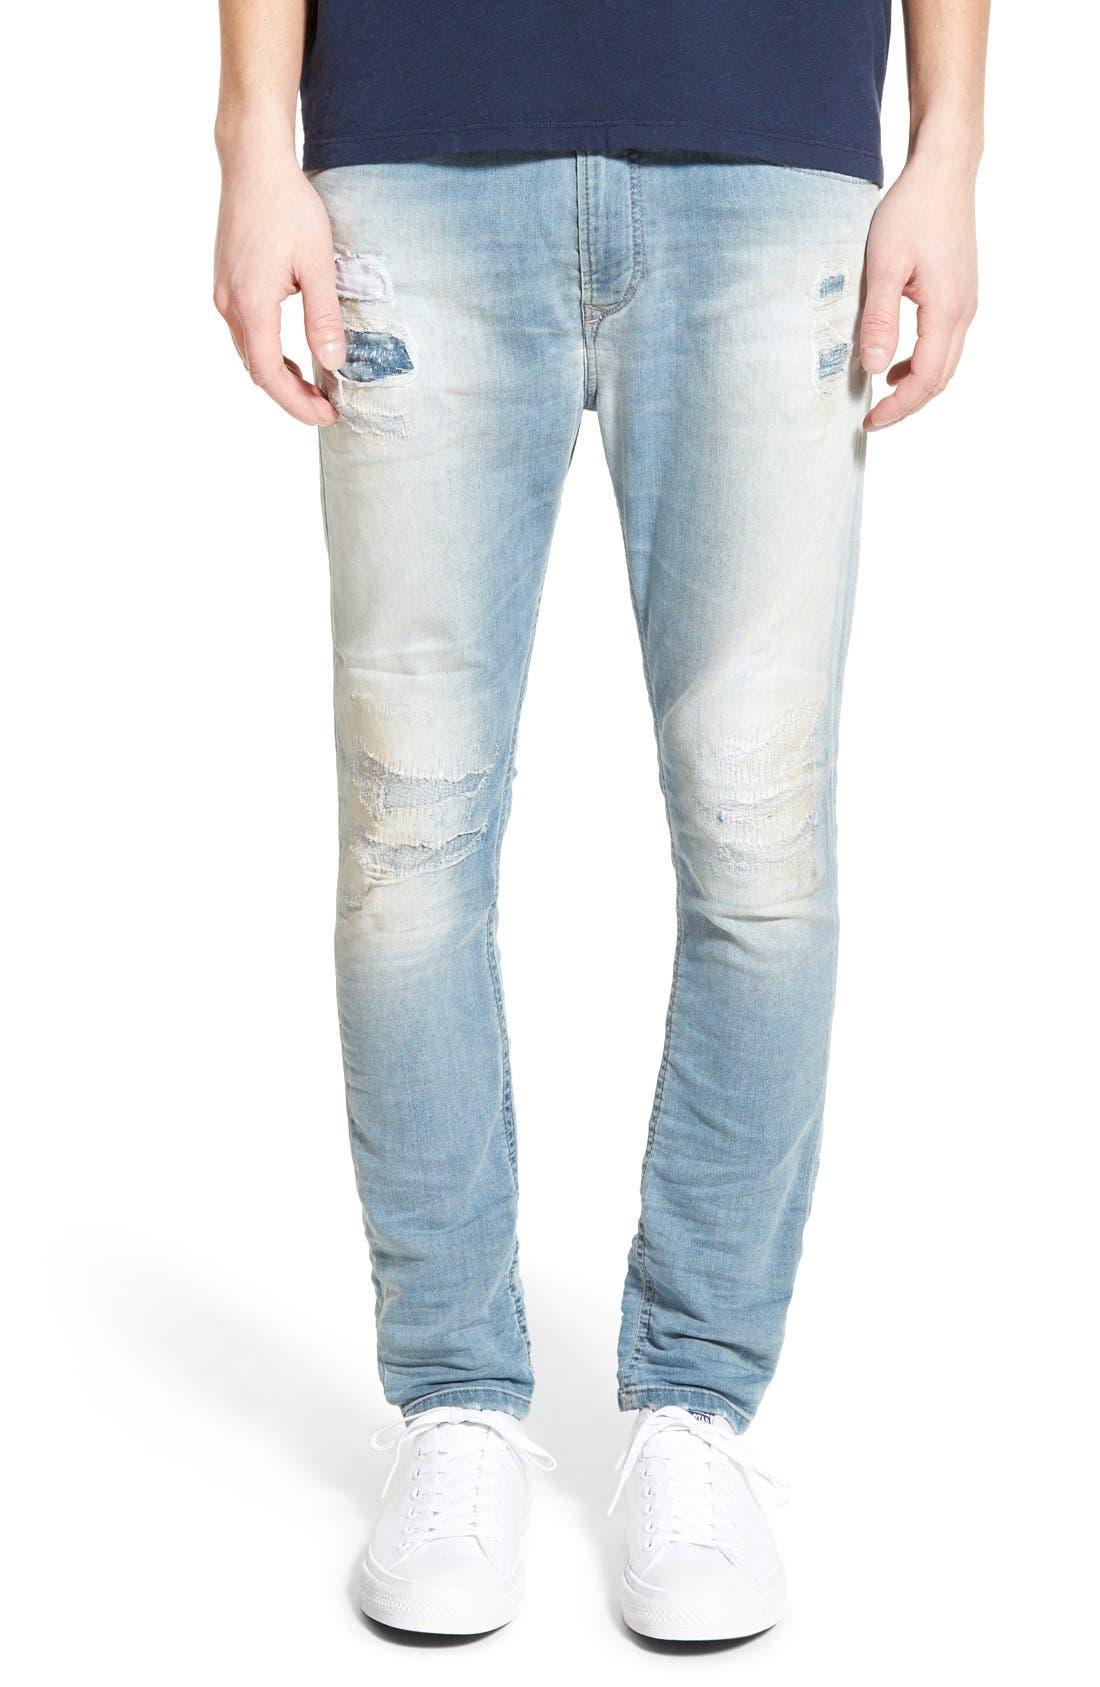 'Spender' Skinny Fit Jeans,                             Main thumbnail 1, color,                             400